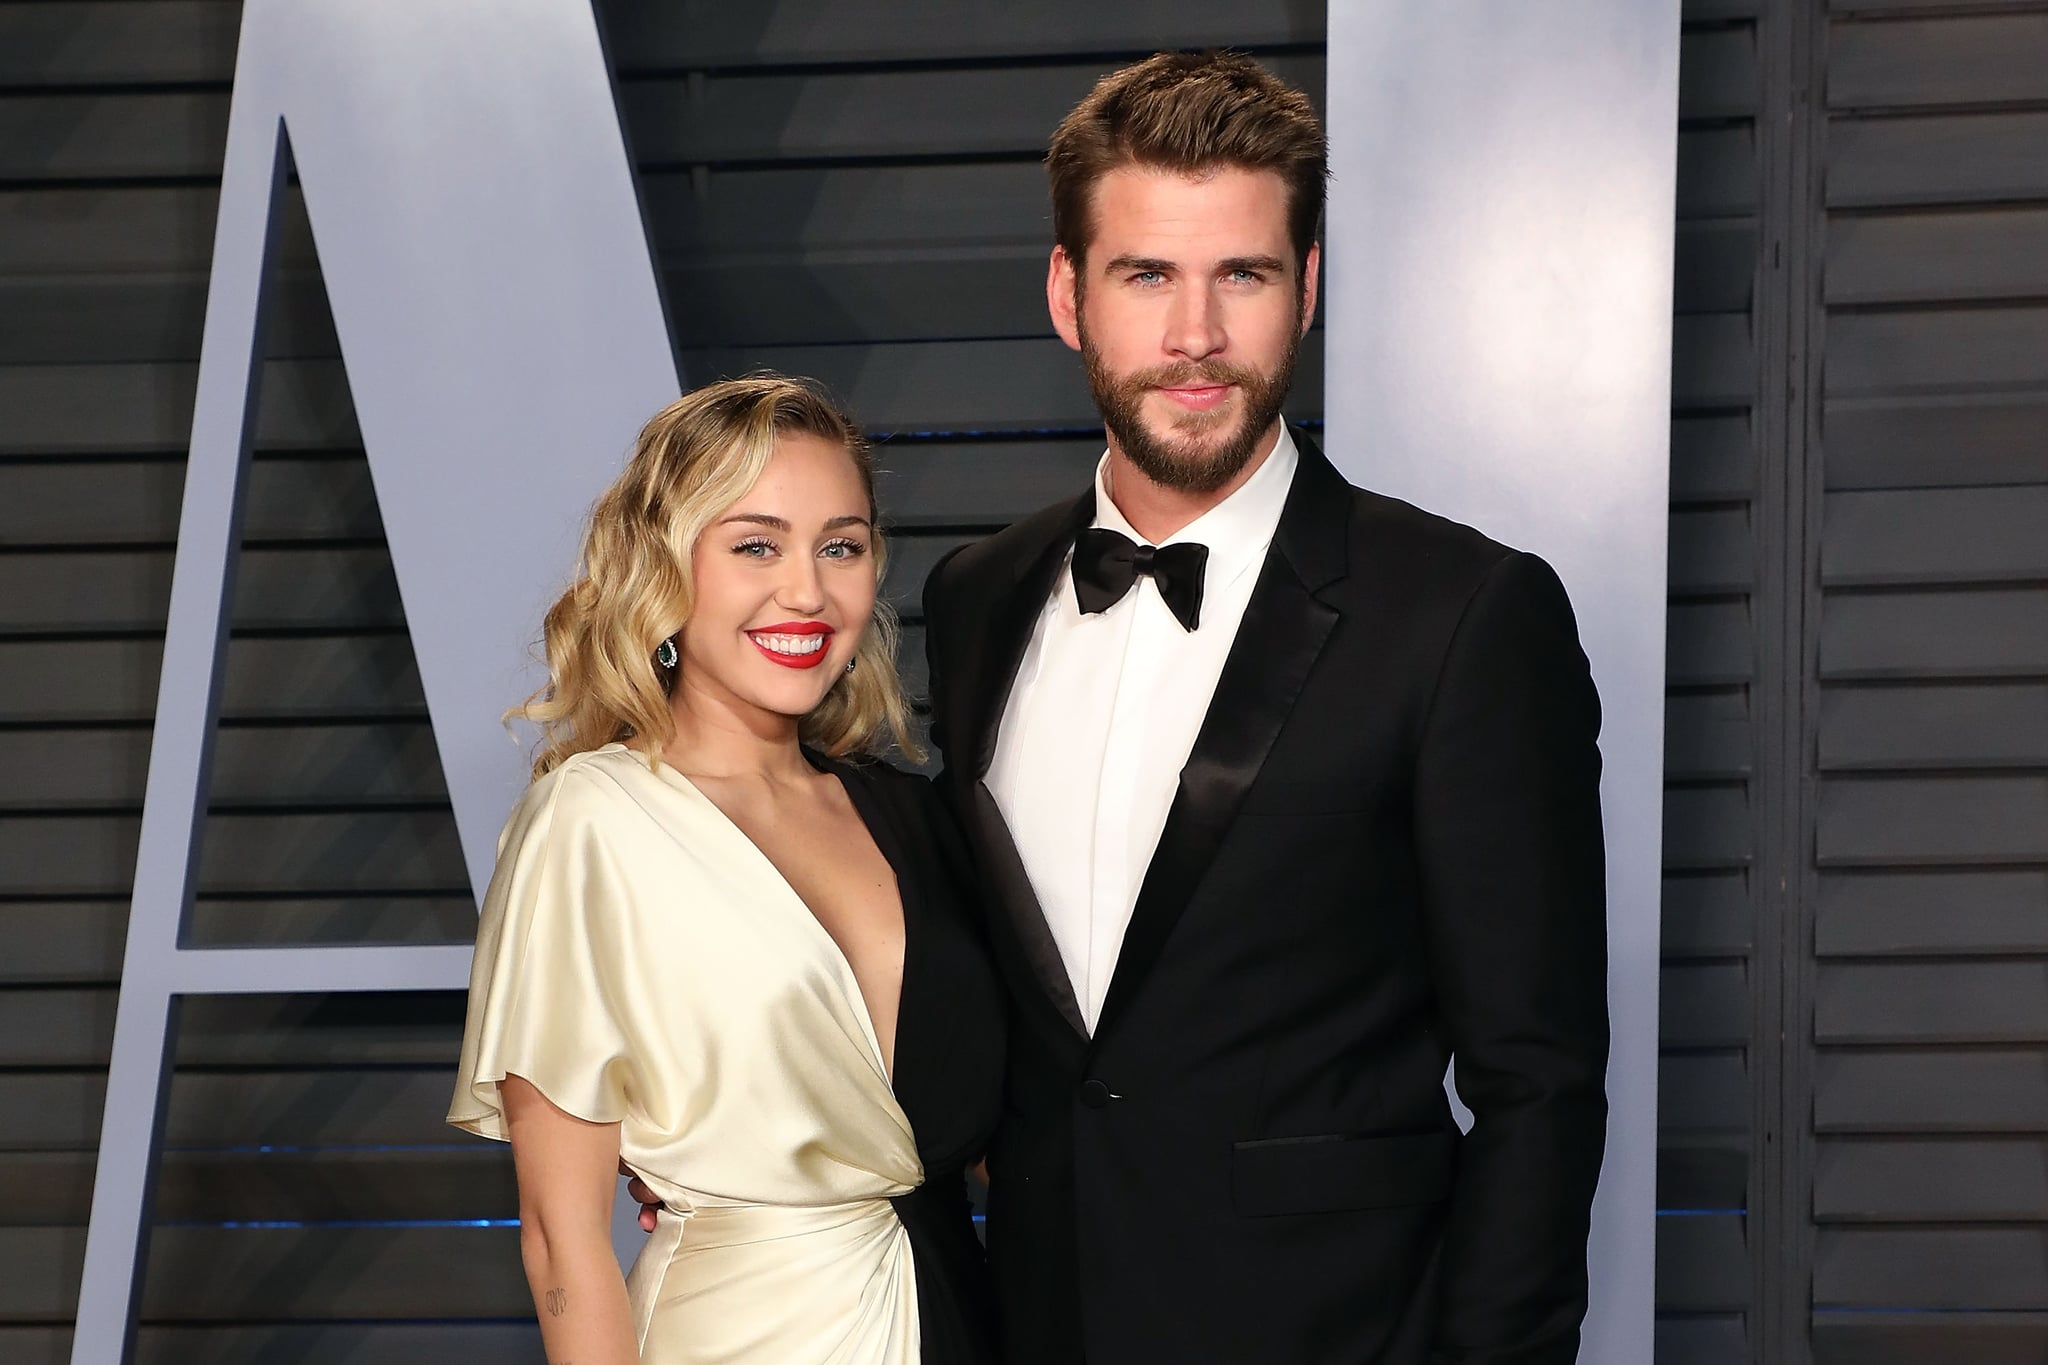 BEVERLY HILLS, CA - MARCH 04:  Miley Cyrus and Liam Hemsworth attend the 2018 Vanity Fair Oscar Party hosted by Radhika Jones at the Wallis Annenberg Centre for the Performing Arts on March 4, 2018 in Beverly Hills, California.  (Photo by Taylor Hill/FilmMagic)